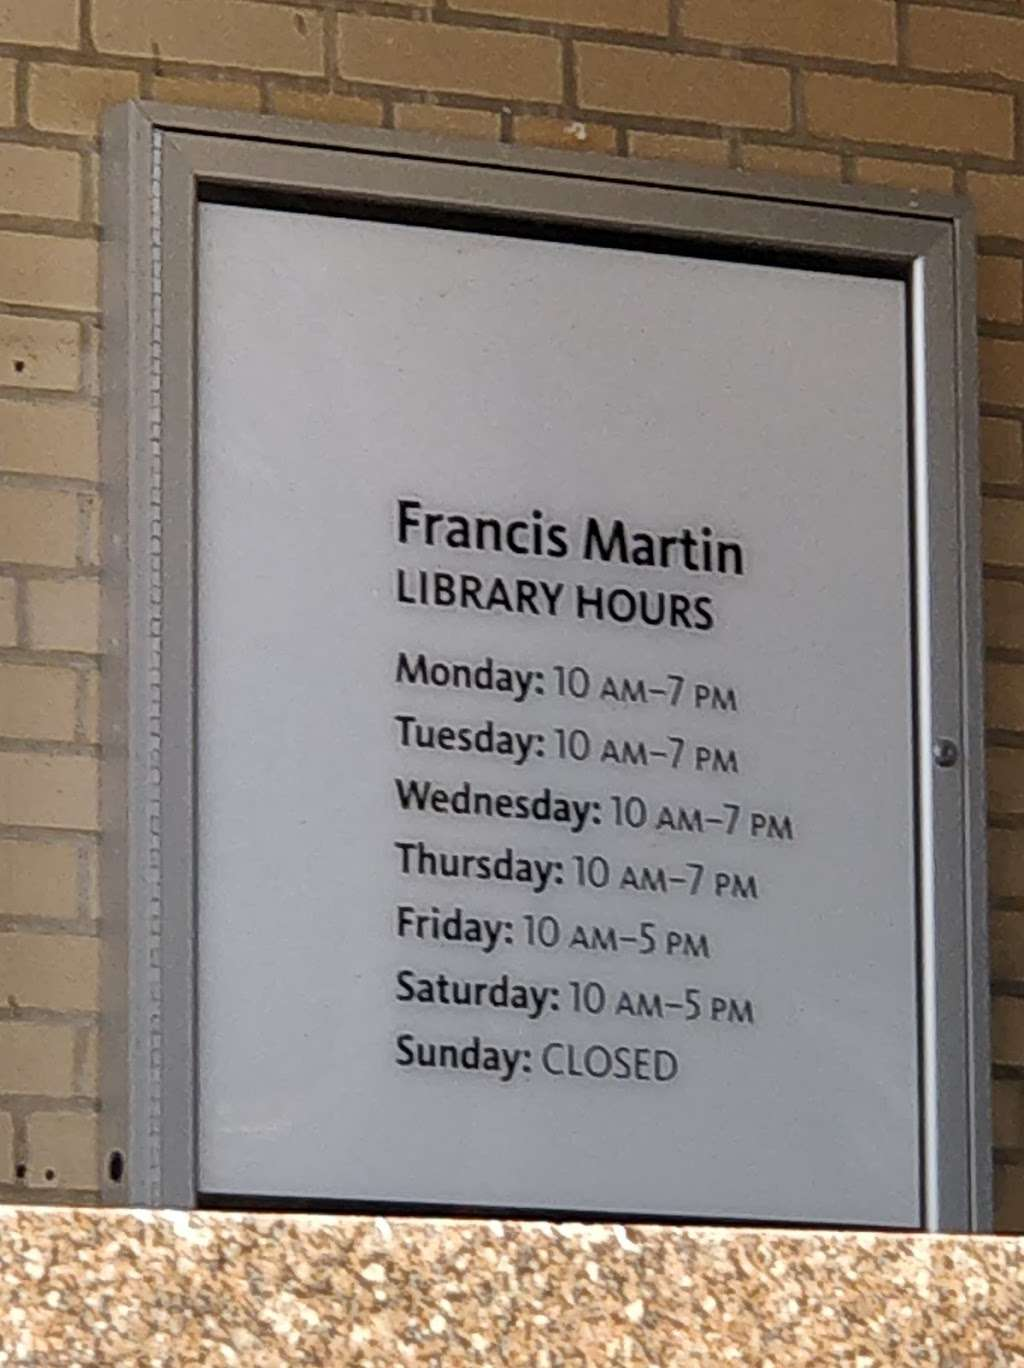 Francis Martin Library - library  | Photo 5 of 5 | Address: 2150 University Ave, Bronx, NY 10453, USA | Phone: (718) 295-5287